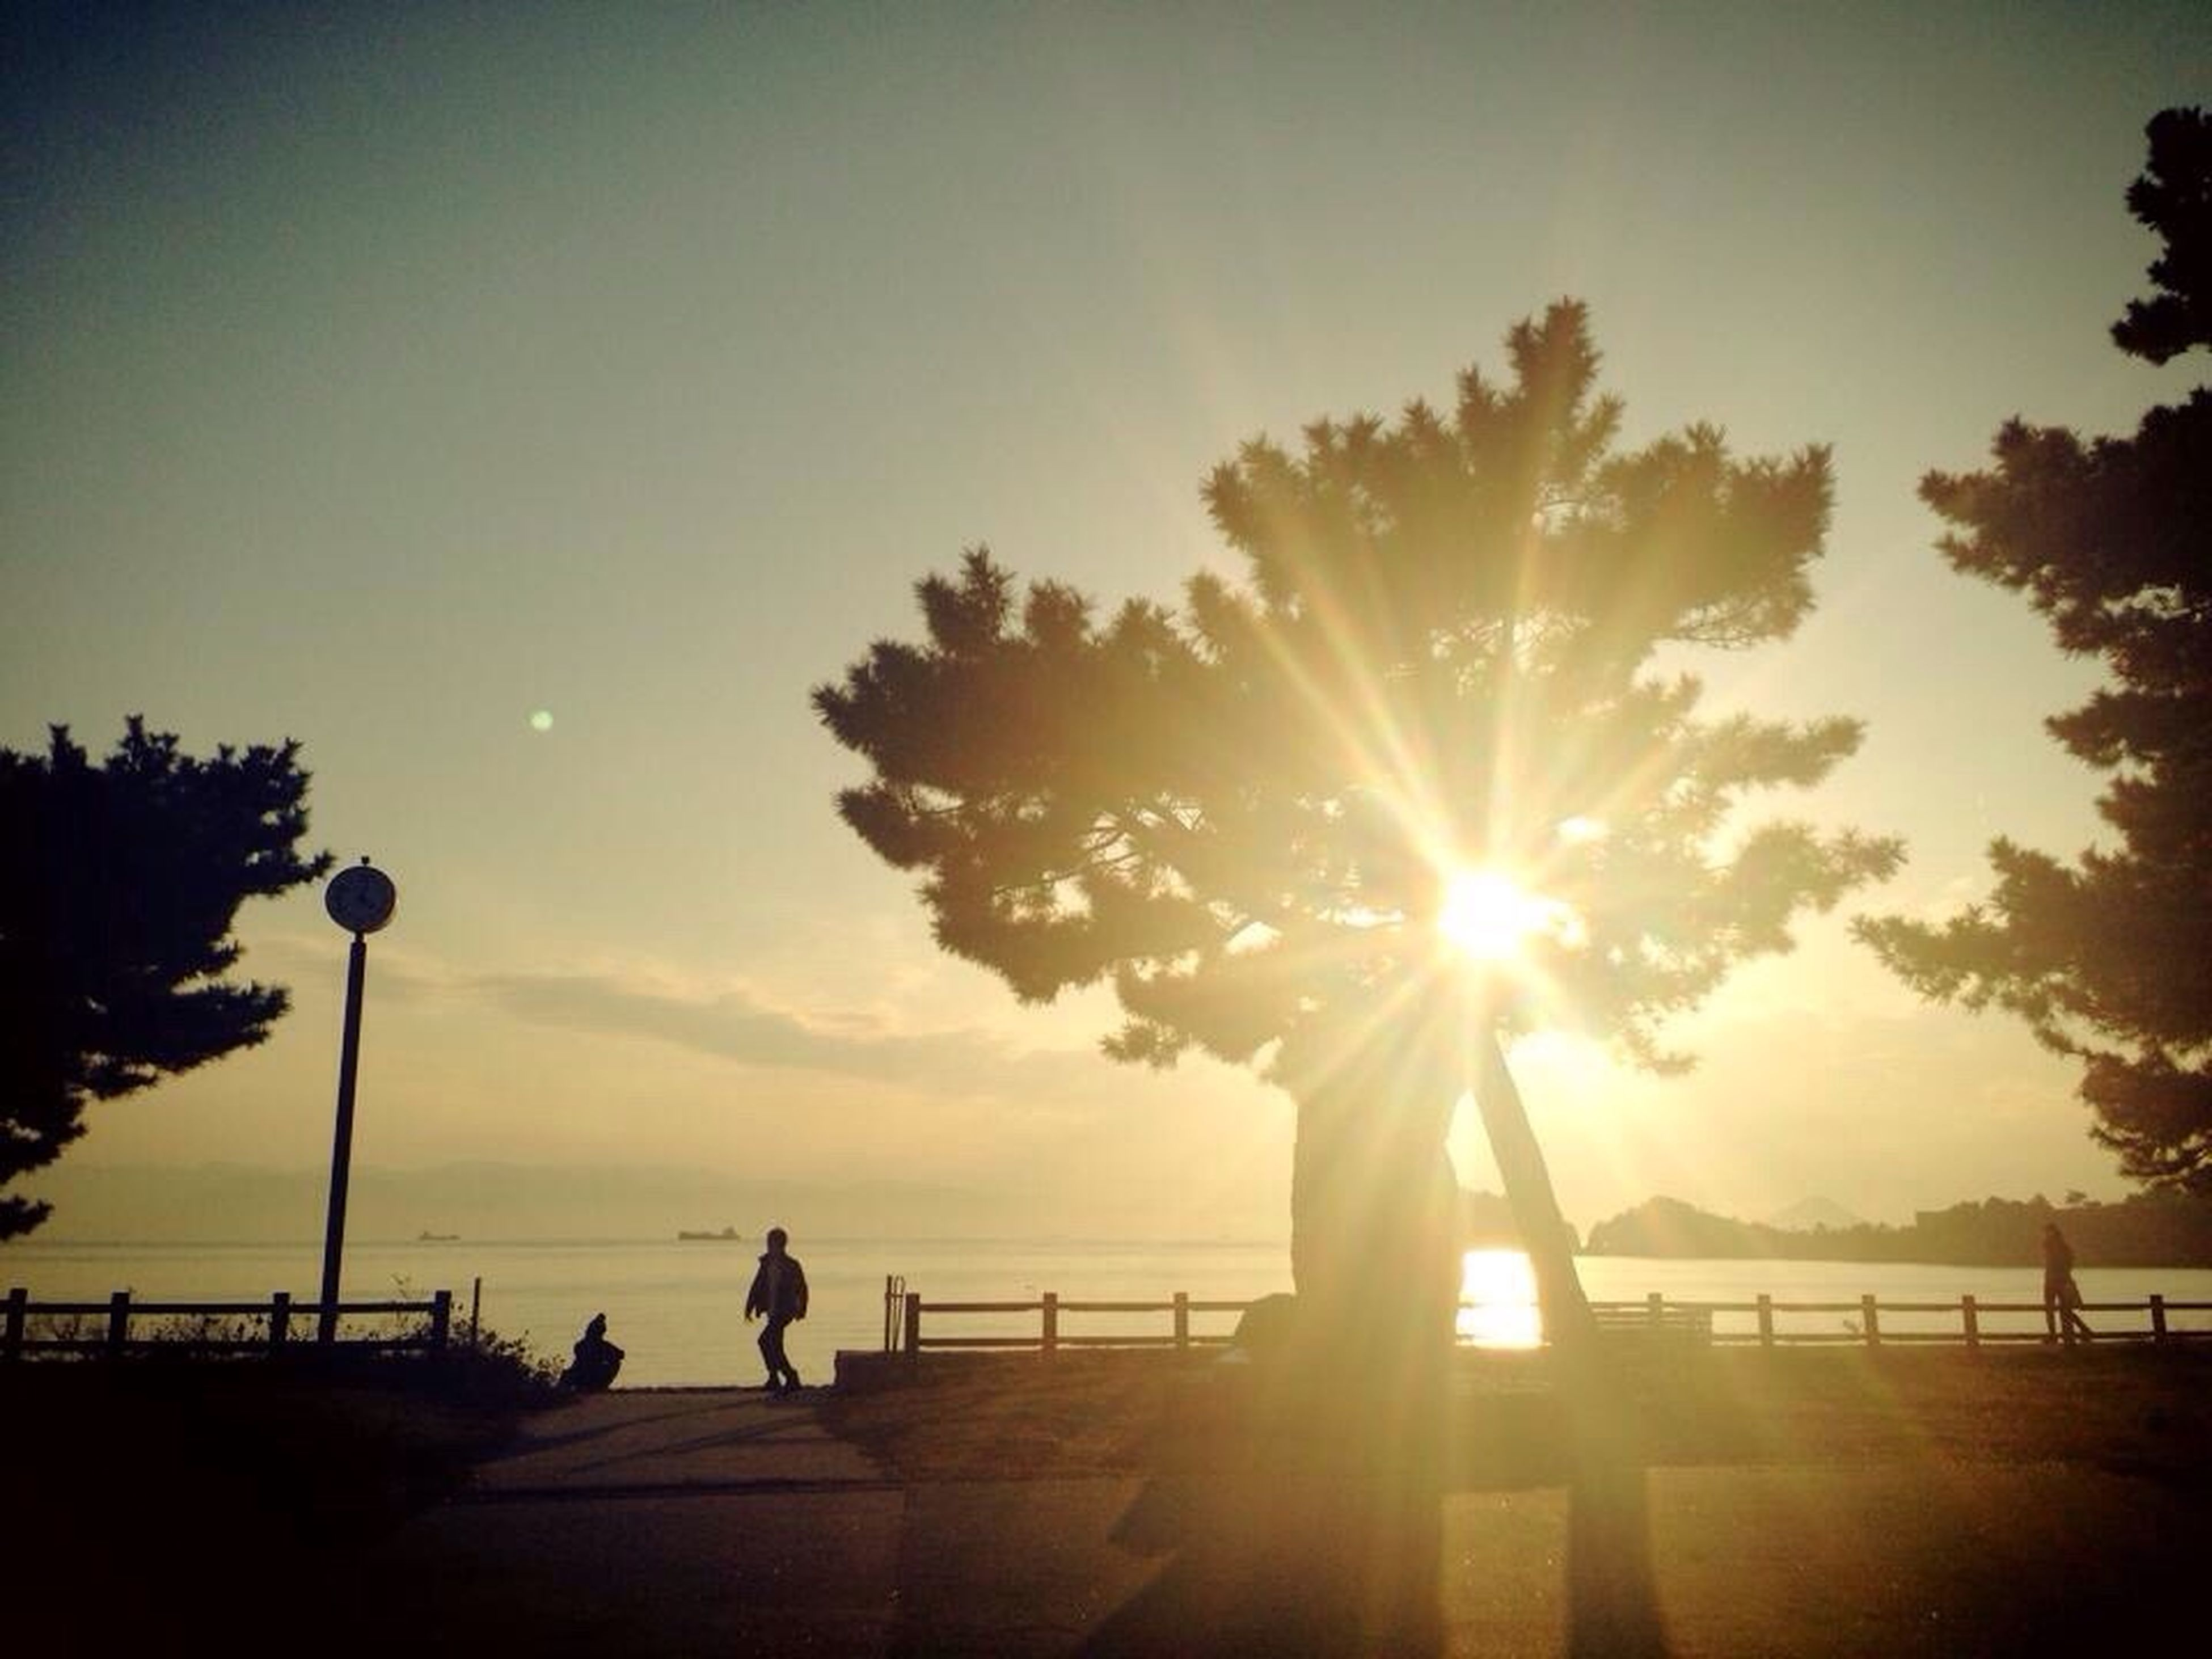 sun, silhouette, sunset, water, sky, sunlight, sunbeam, tranquility, sea, scenics, tranquil scene, beauty in nature, railing, tree, lens flare, nature, lifestyles, leisure activity, men